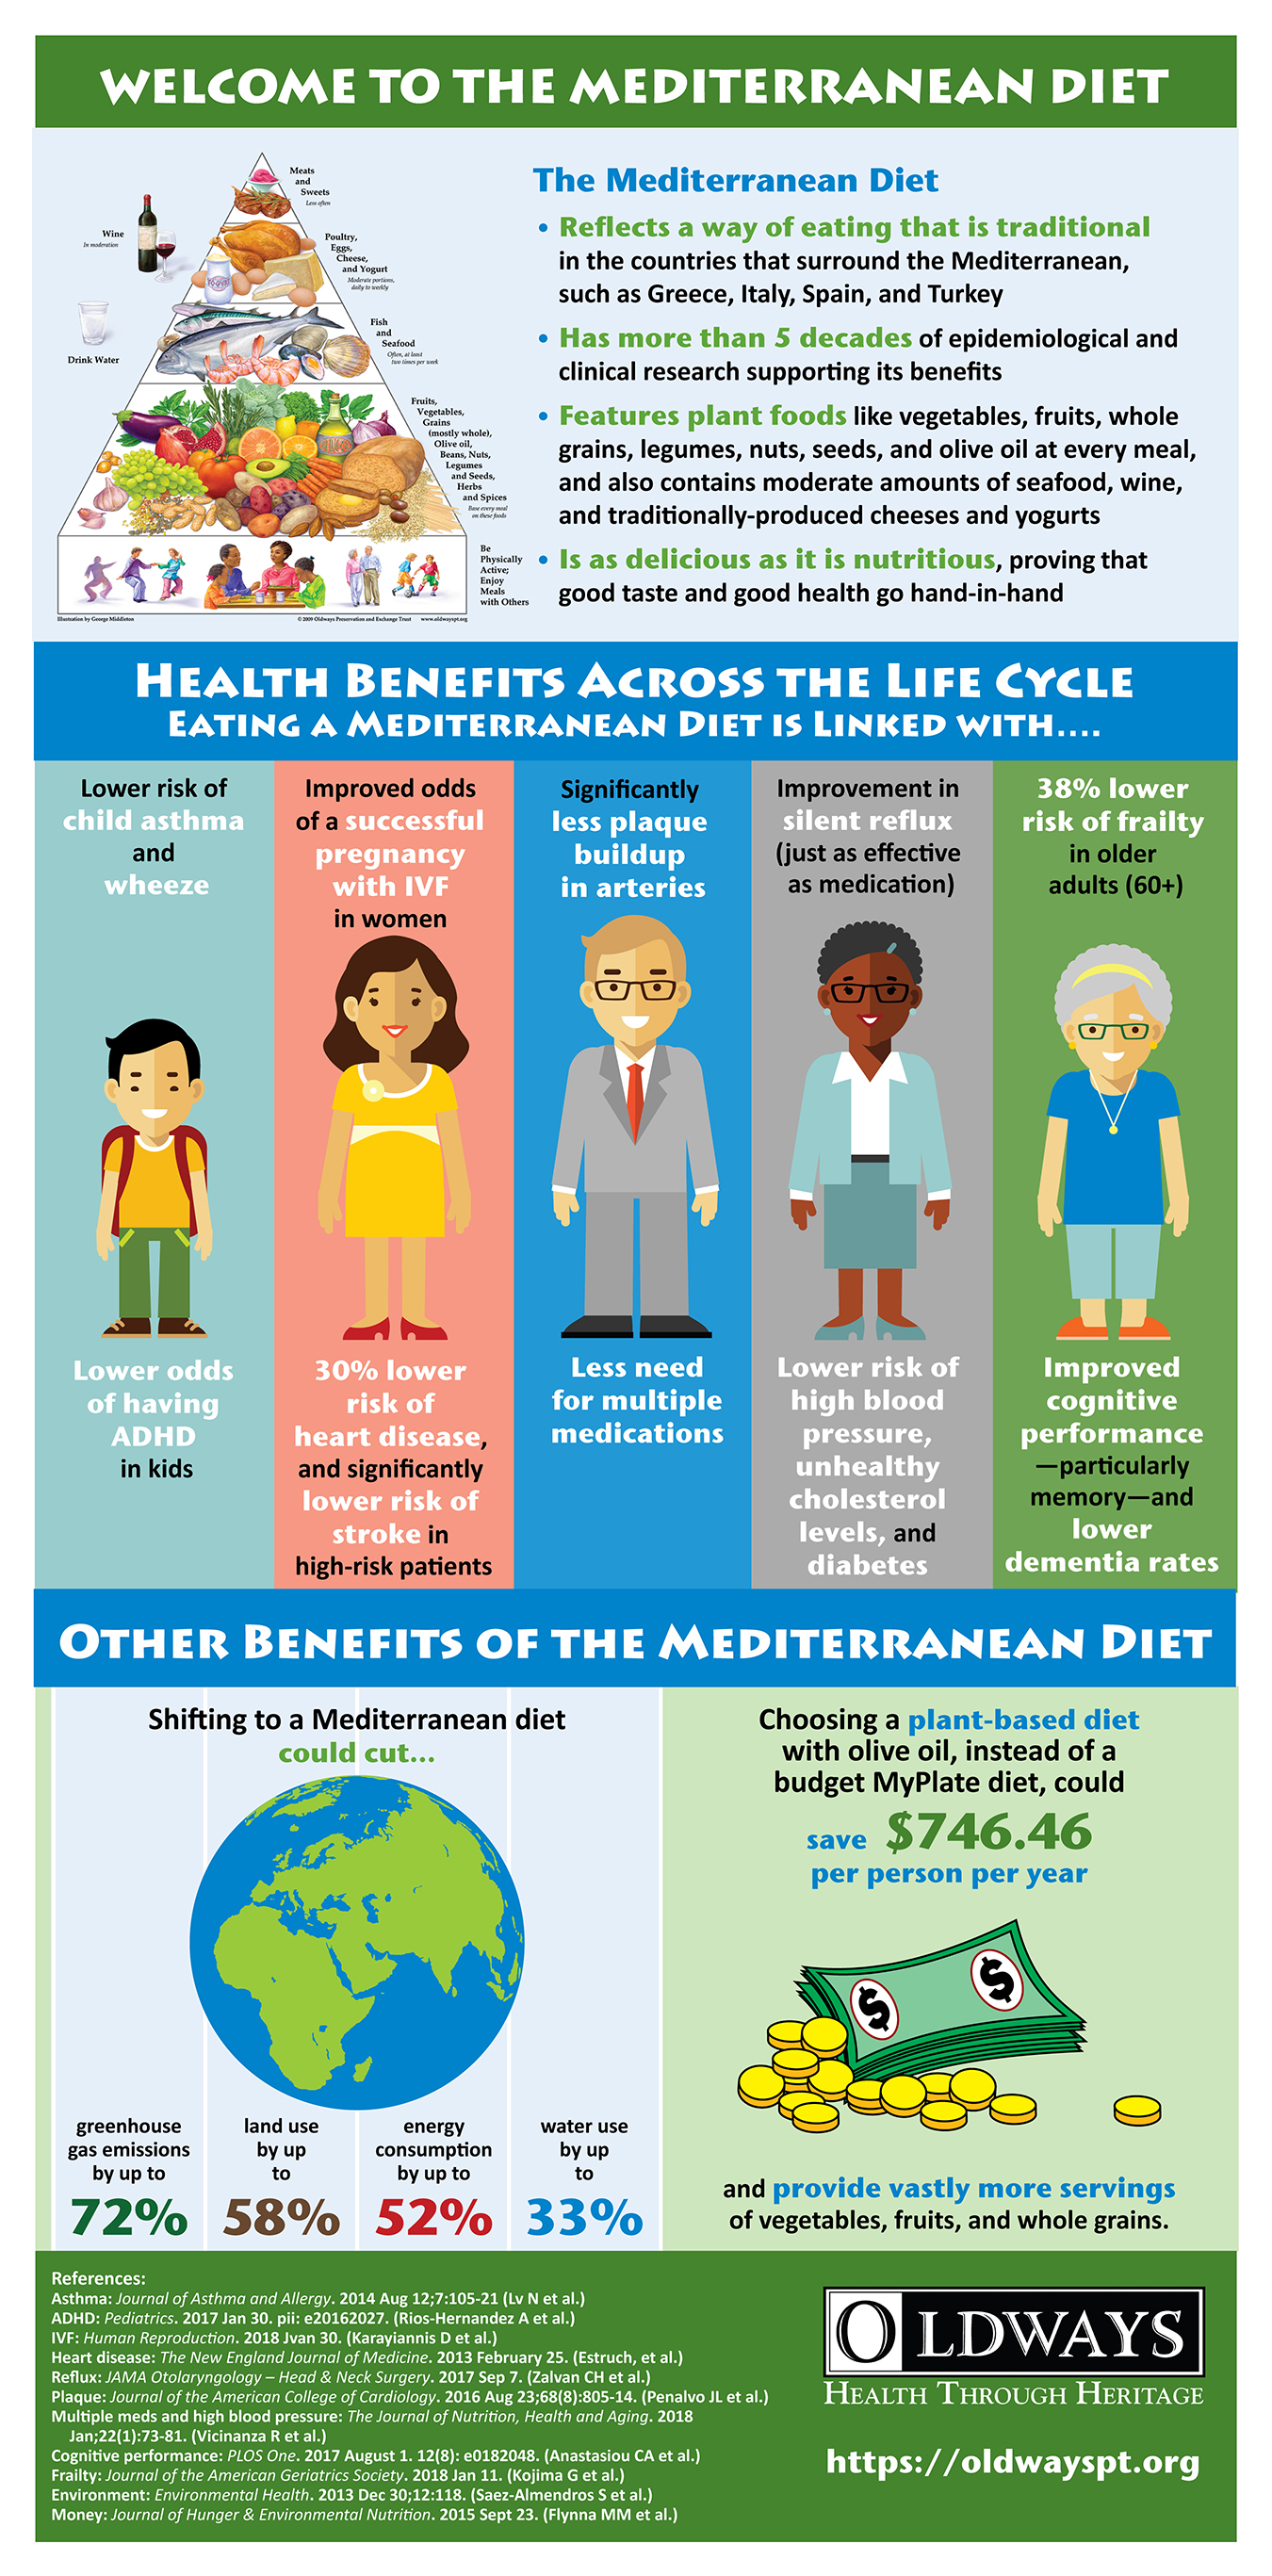 MedDietBenefits_infographic_REV_small.jpg